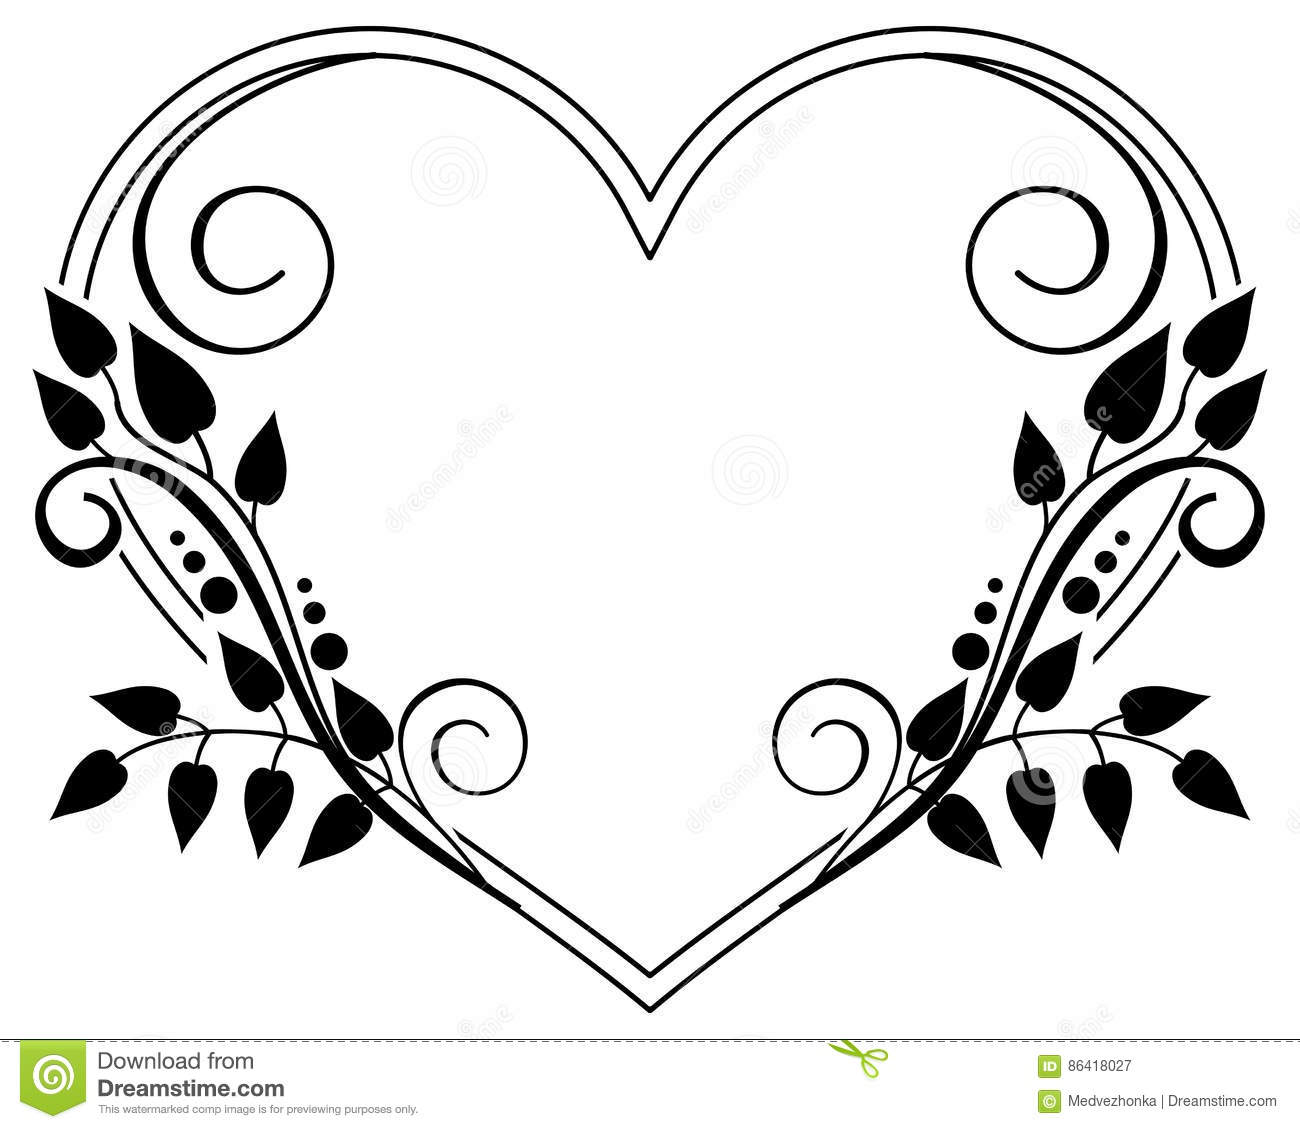 Heart Shaped Black And White Frame With Floral Silhouettes